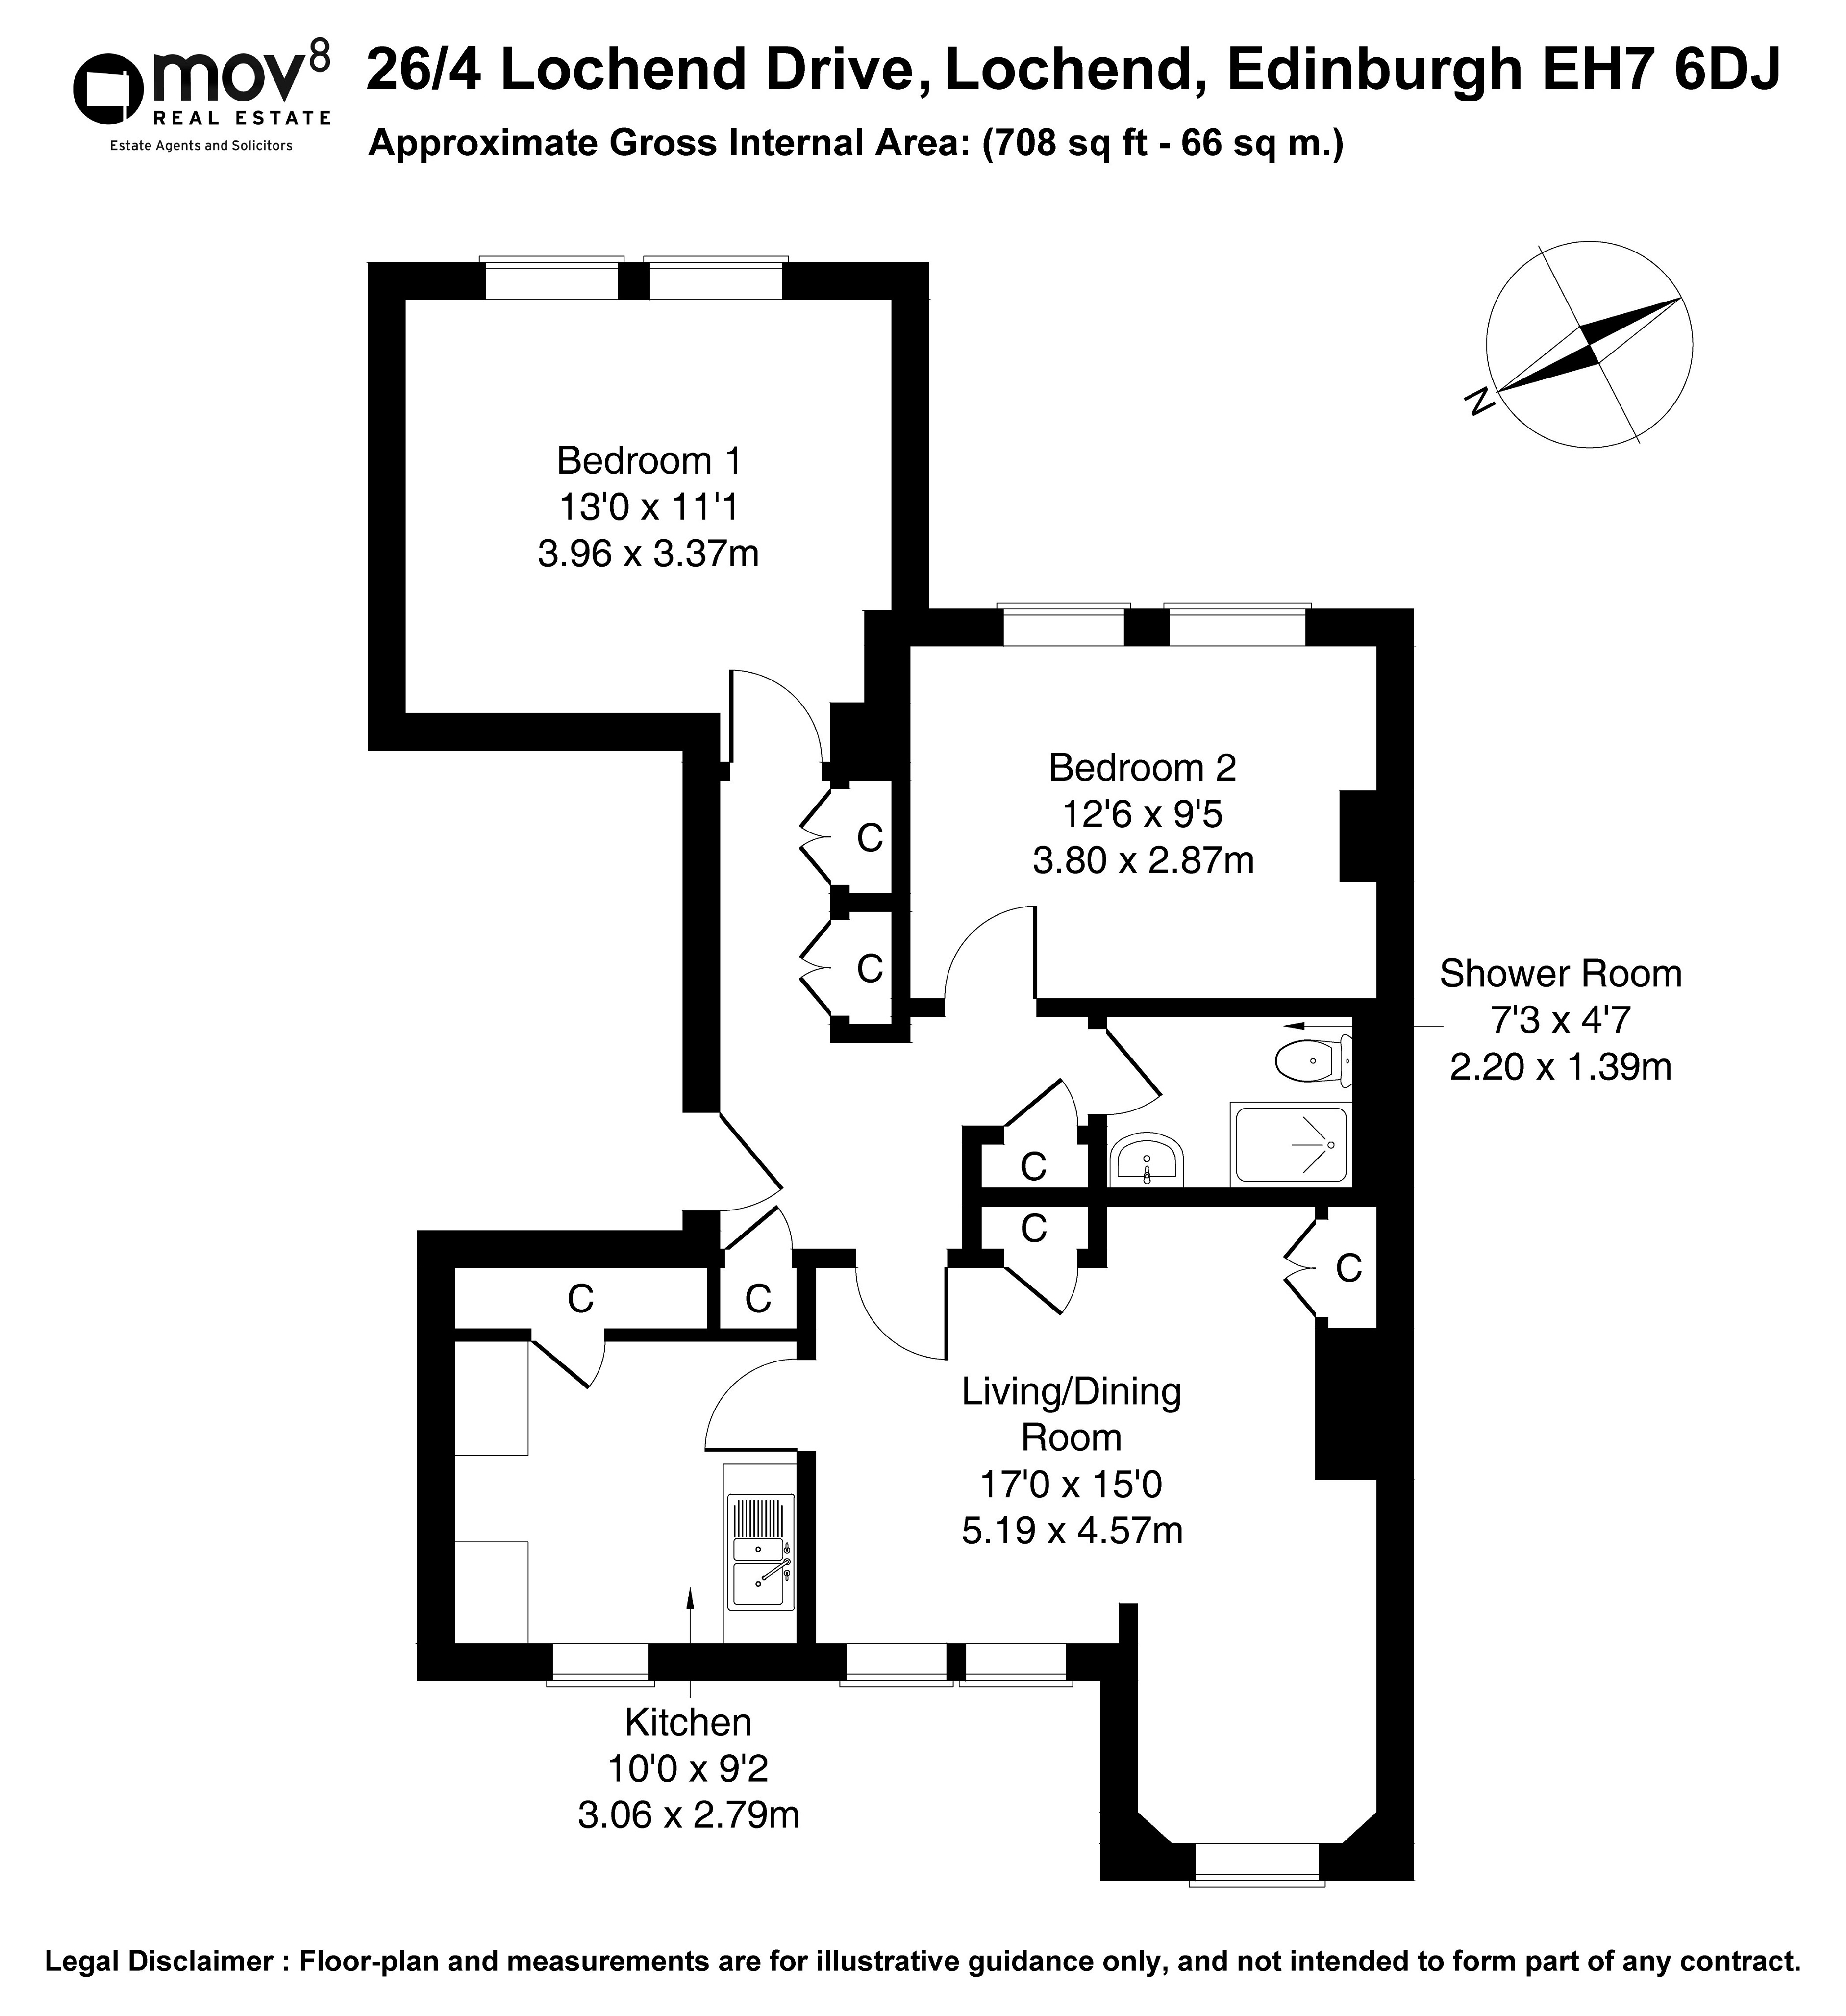 Floorplan 1 of 26/4, Lochend Drive, Lochend, Edinburgh, EH7 6DJ